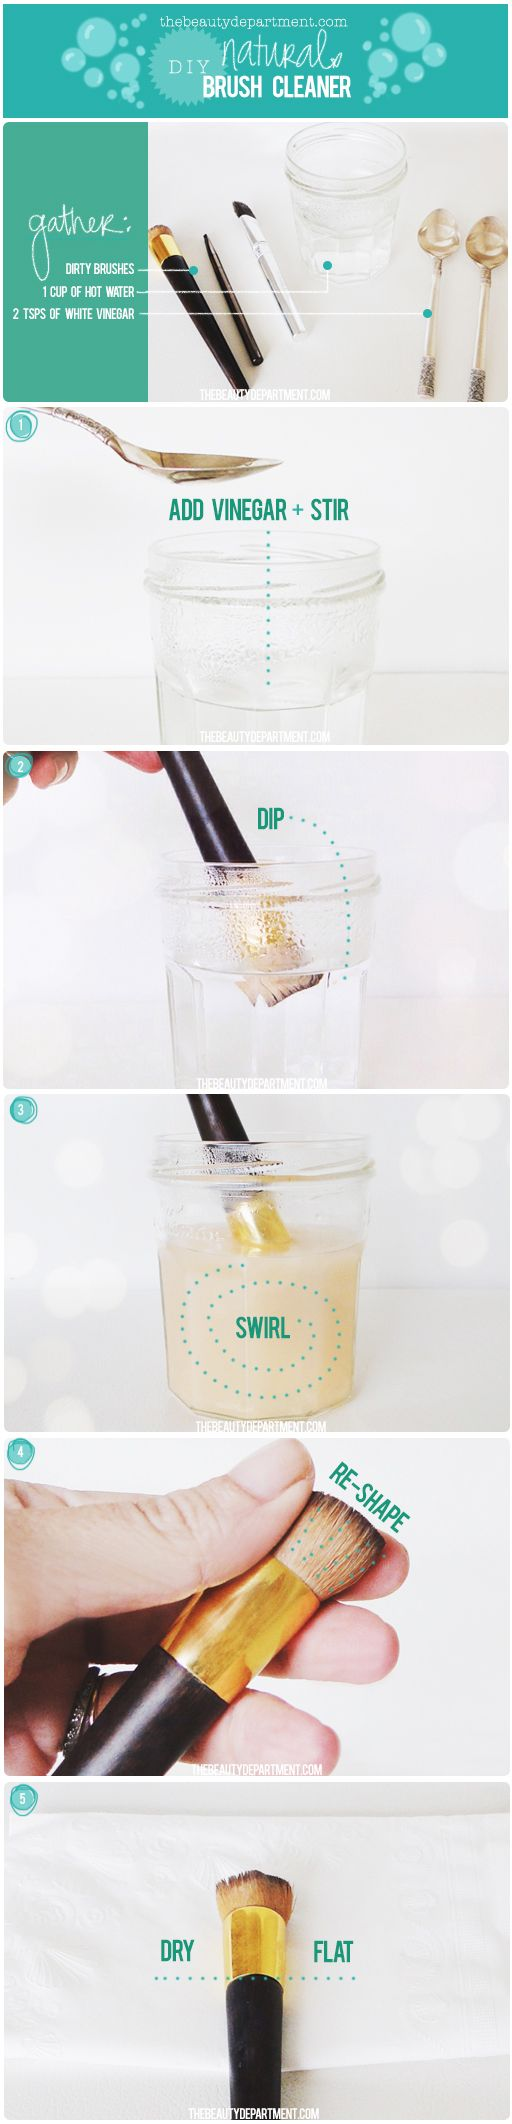 thebeautydepartment.com diy brush cleaner